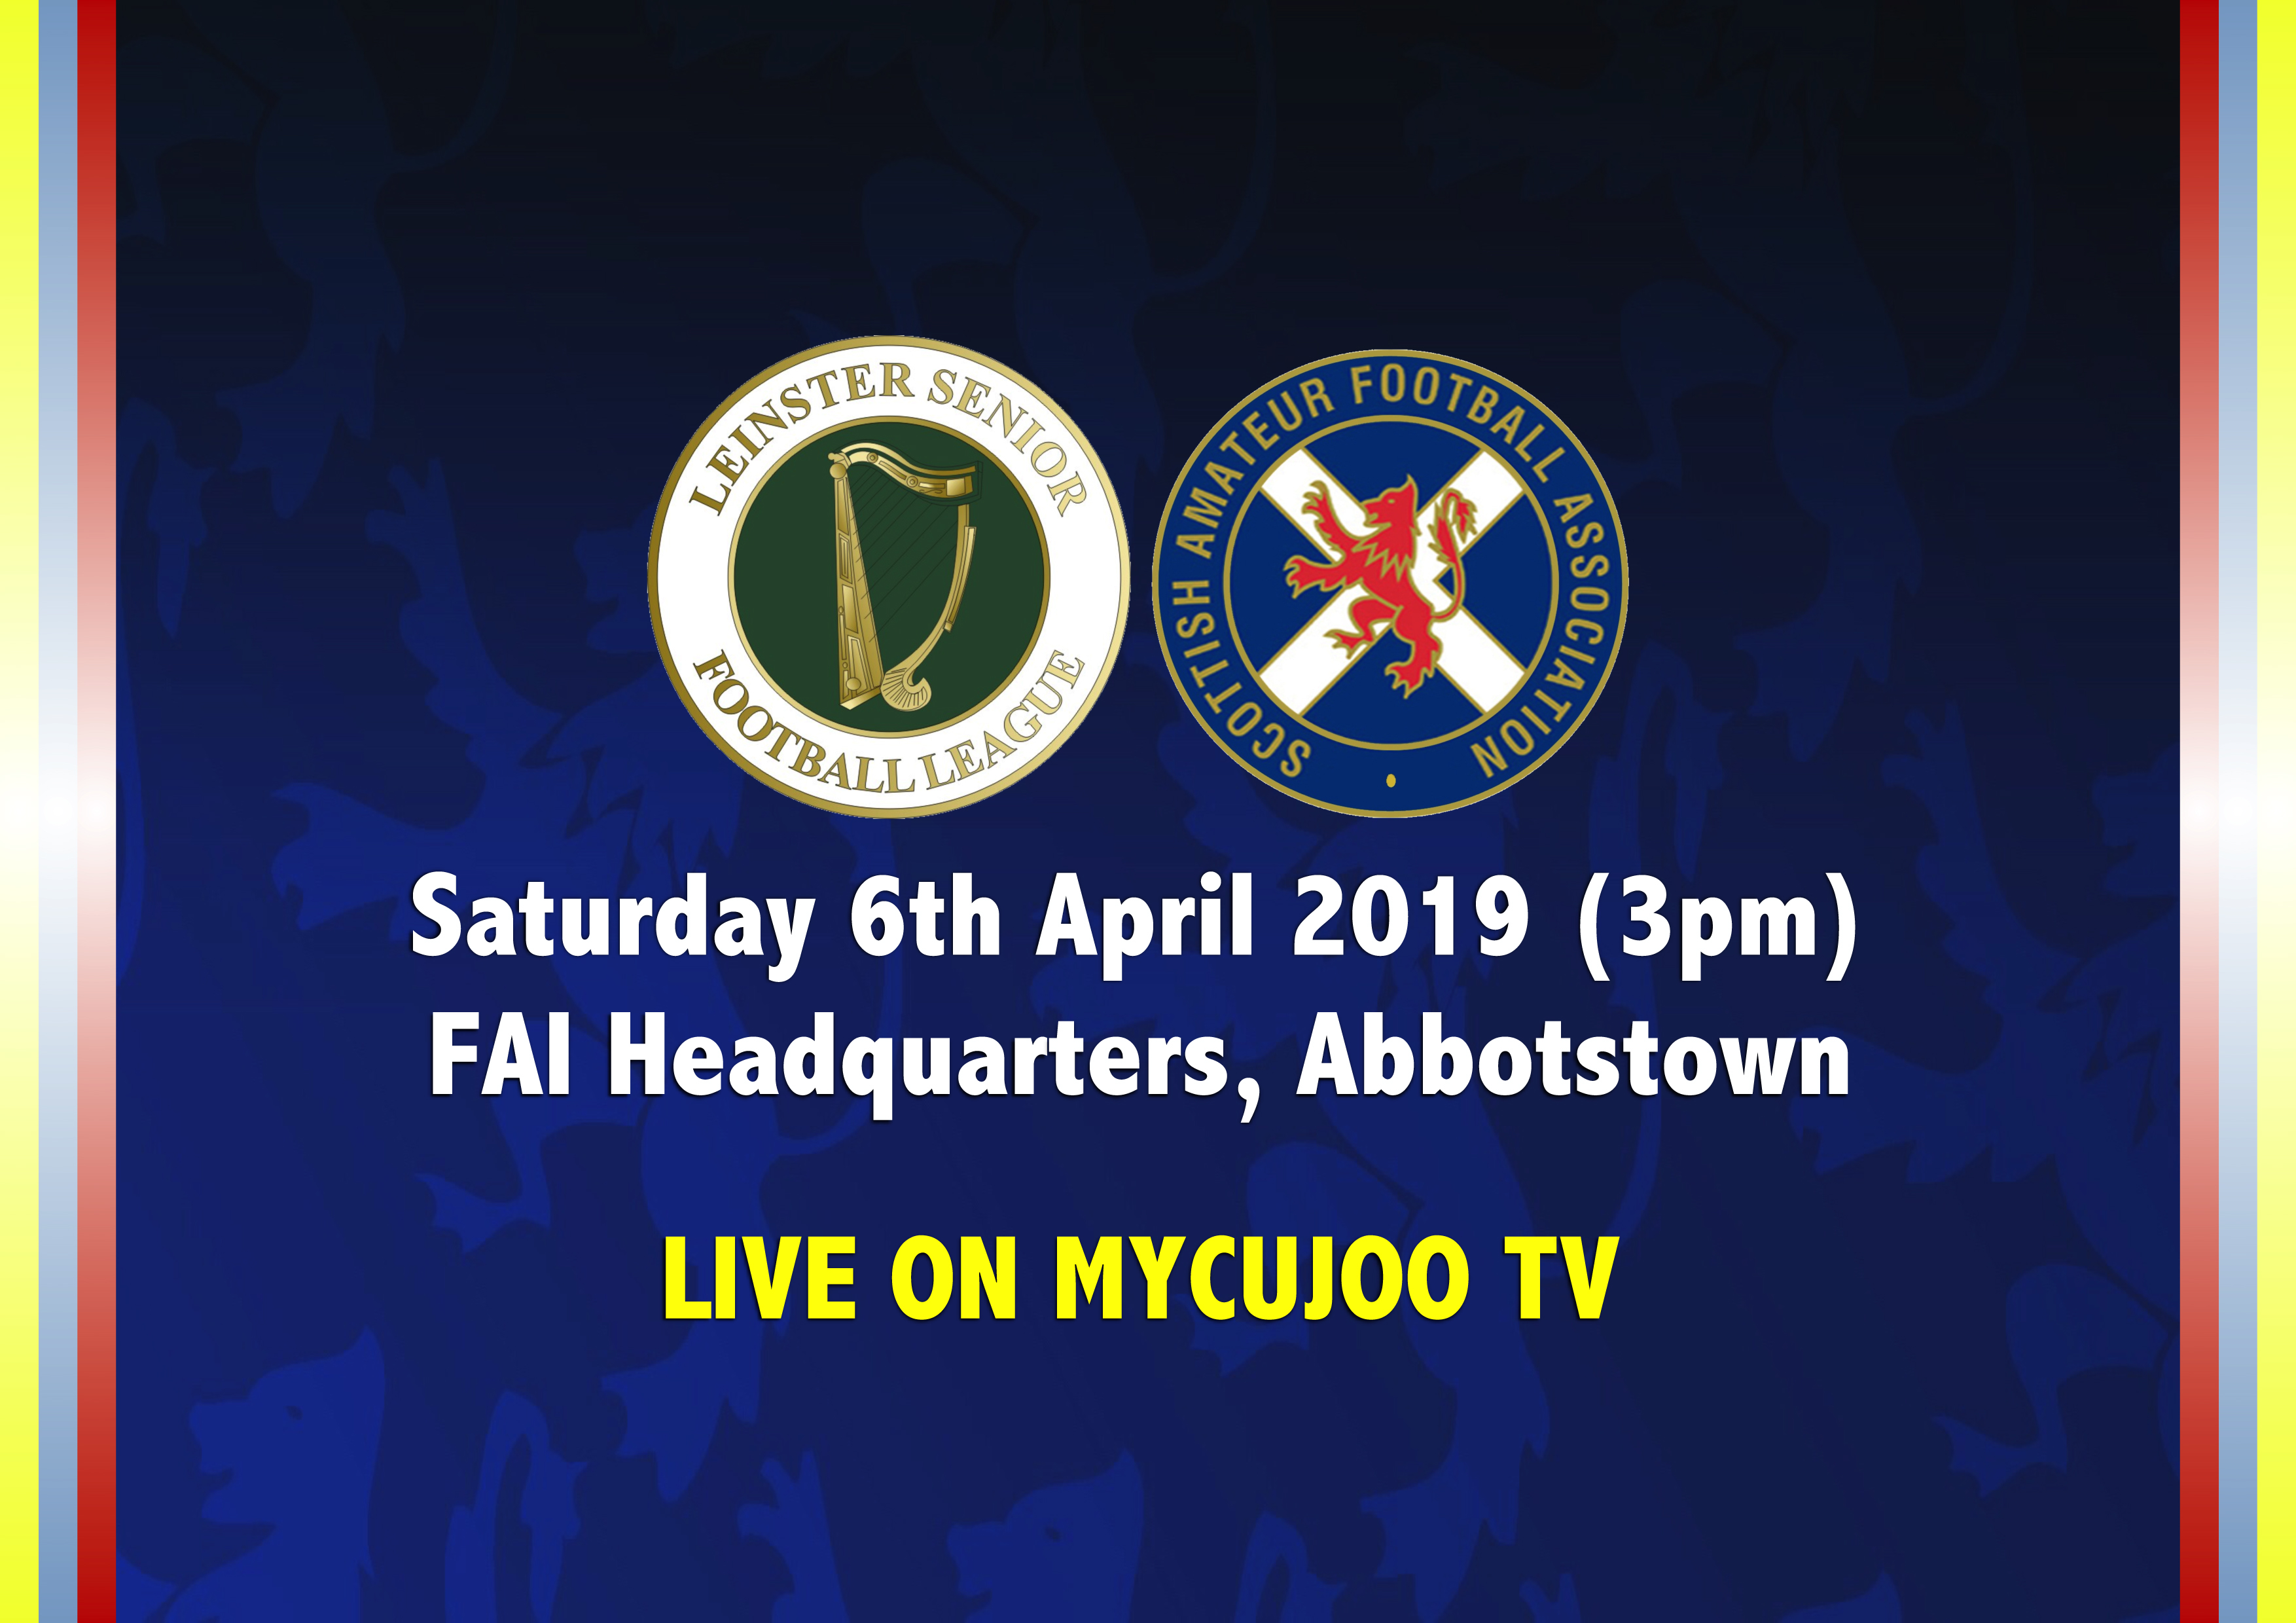 <a href='/newsdetail/ID/616'> Leinster Senior League vs SAFA Select - Sat, Apr 6, 2019 3:00 PM</a>